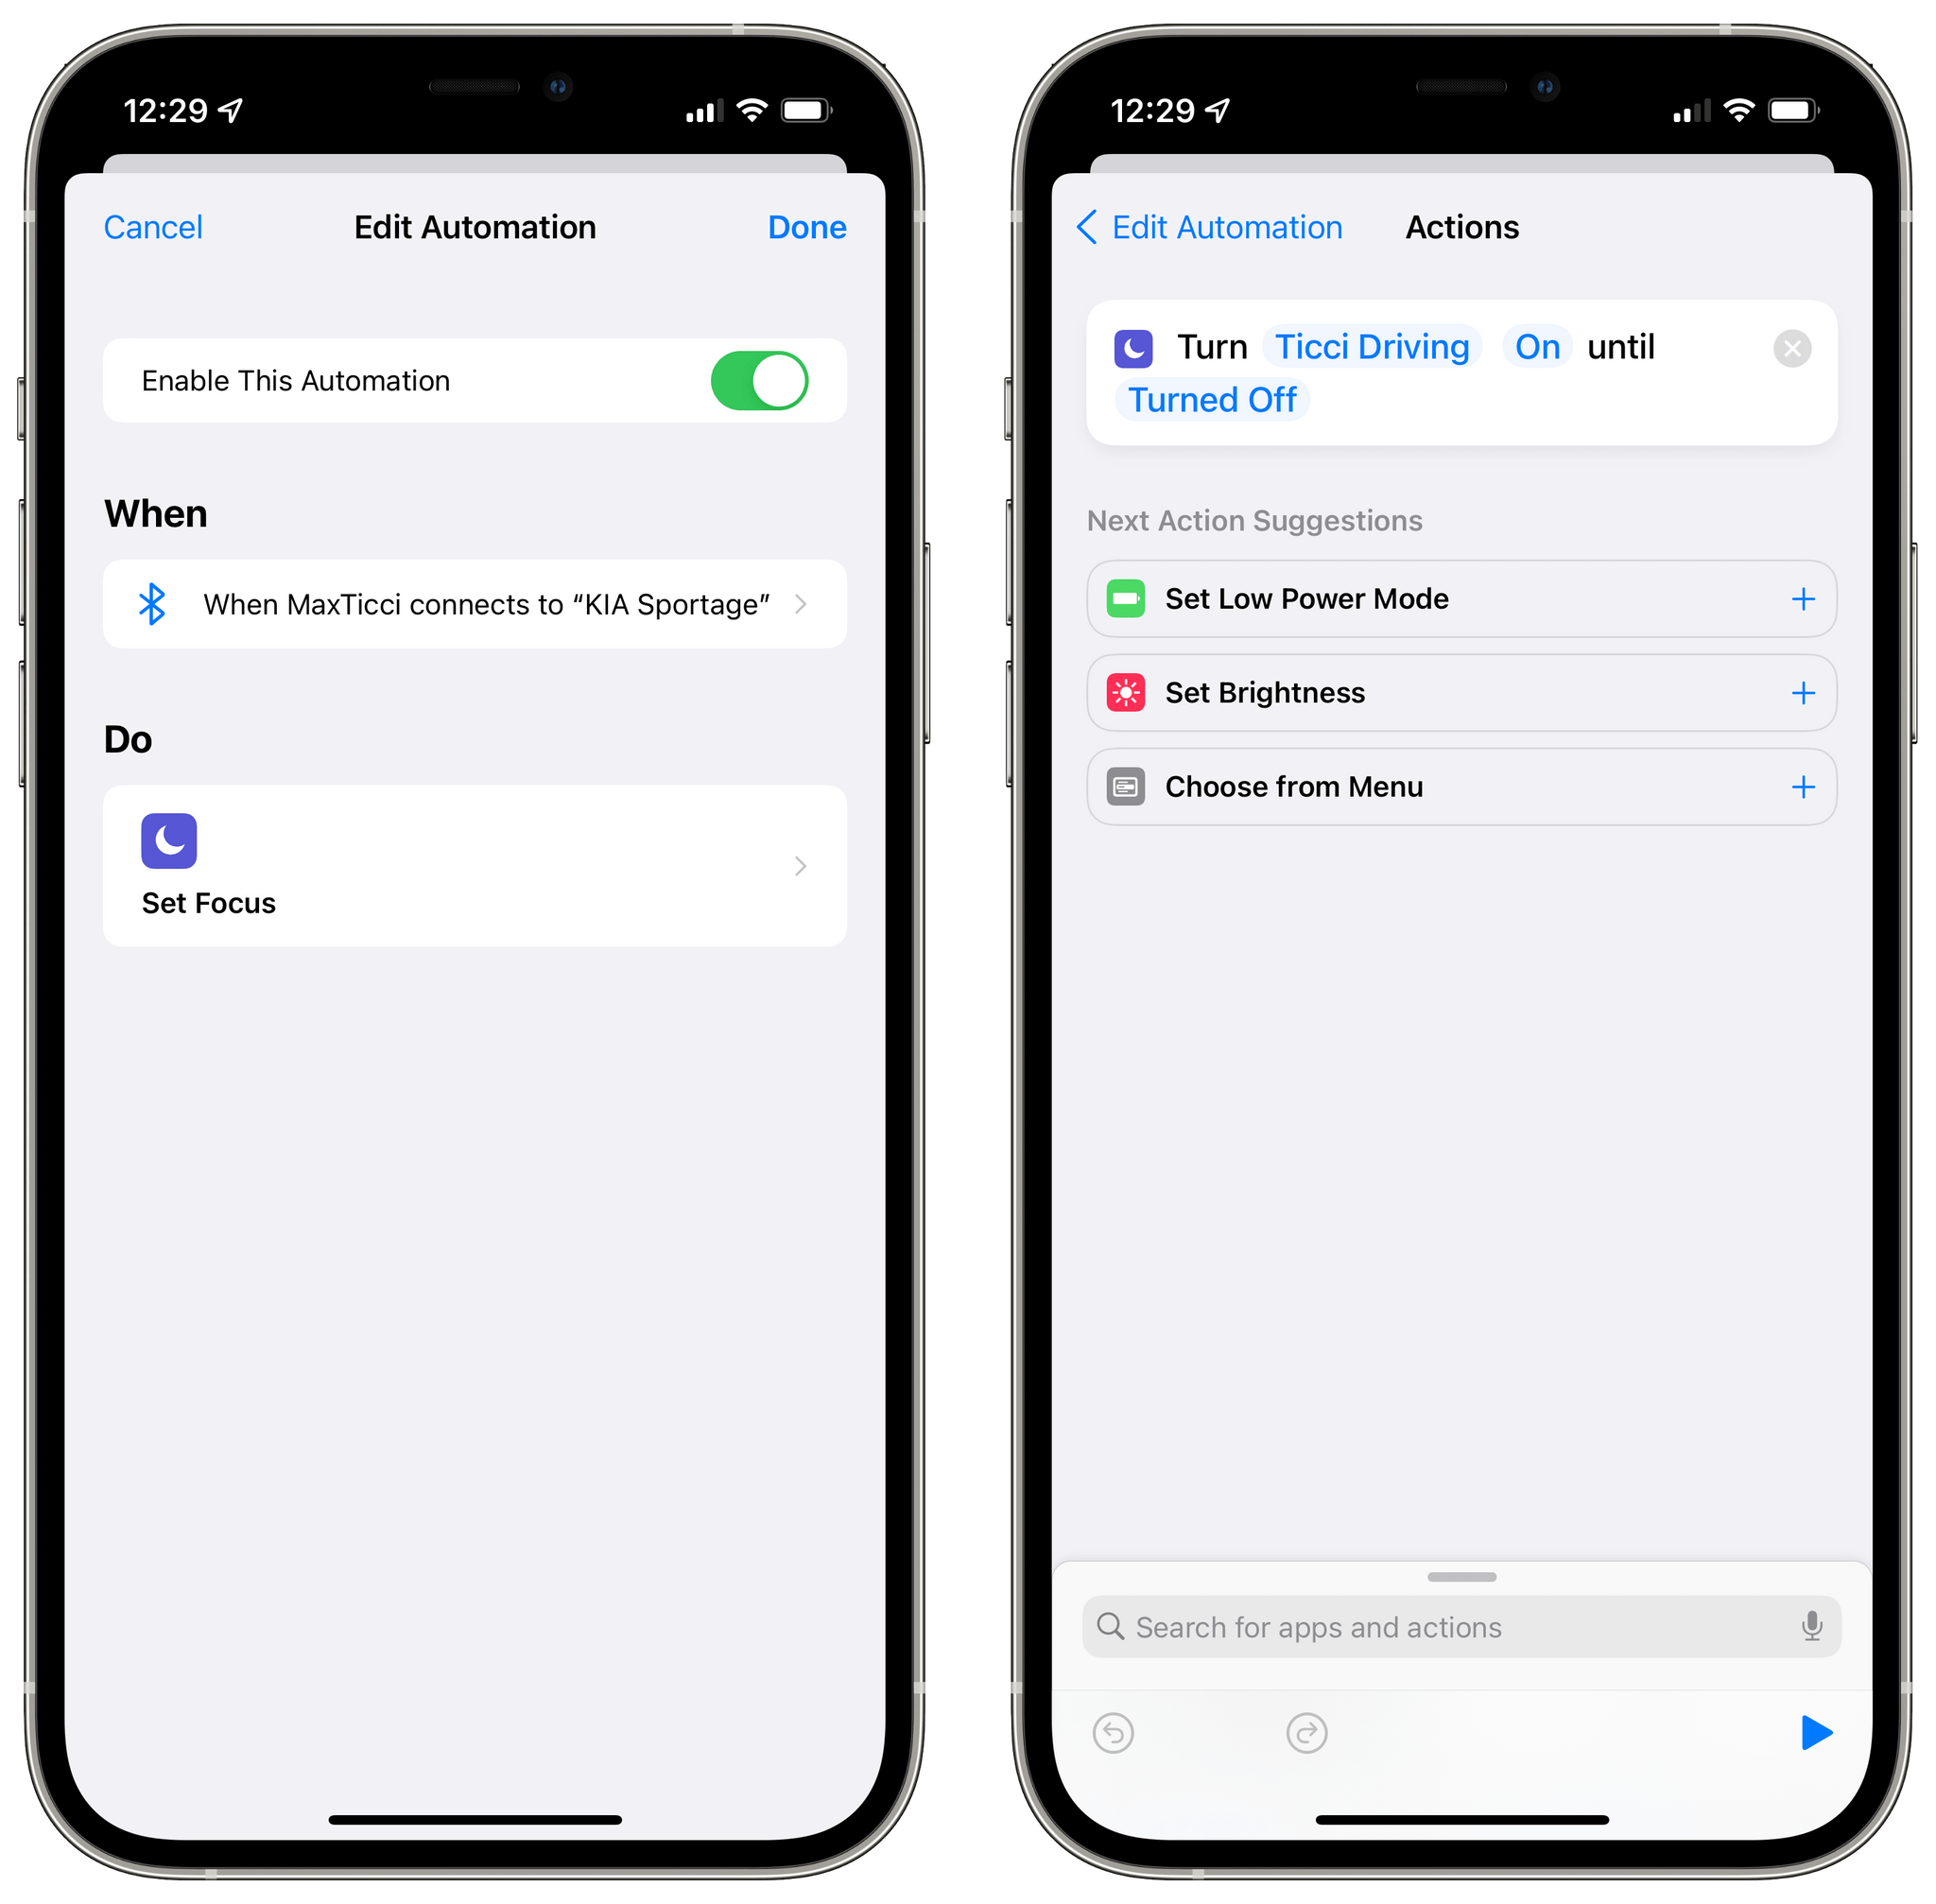 My workaround for turning on a custom Focus when my iPhone connects to a specific Bluetooth device.